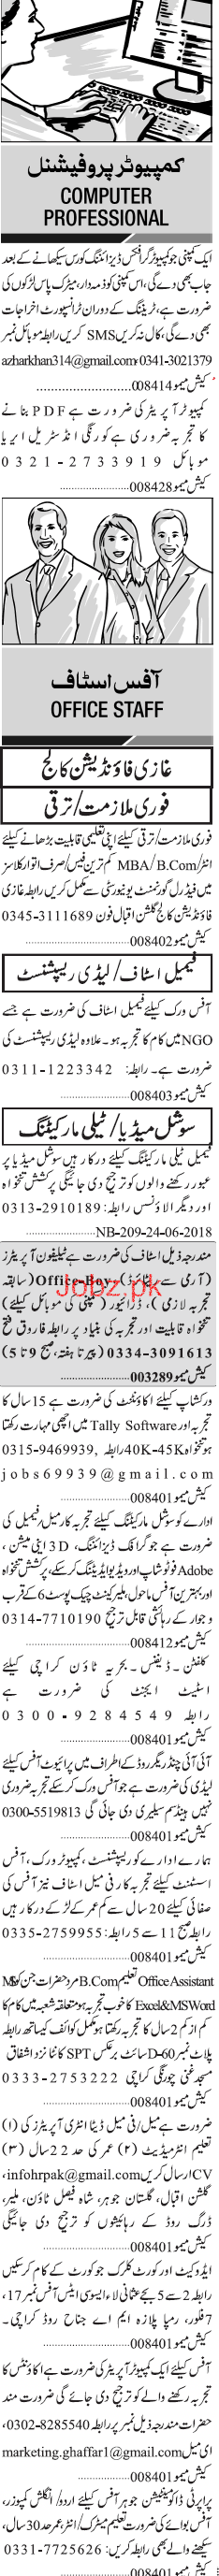 Sunday Jang Classified Computer Professional Jobs 2019 Job